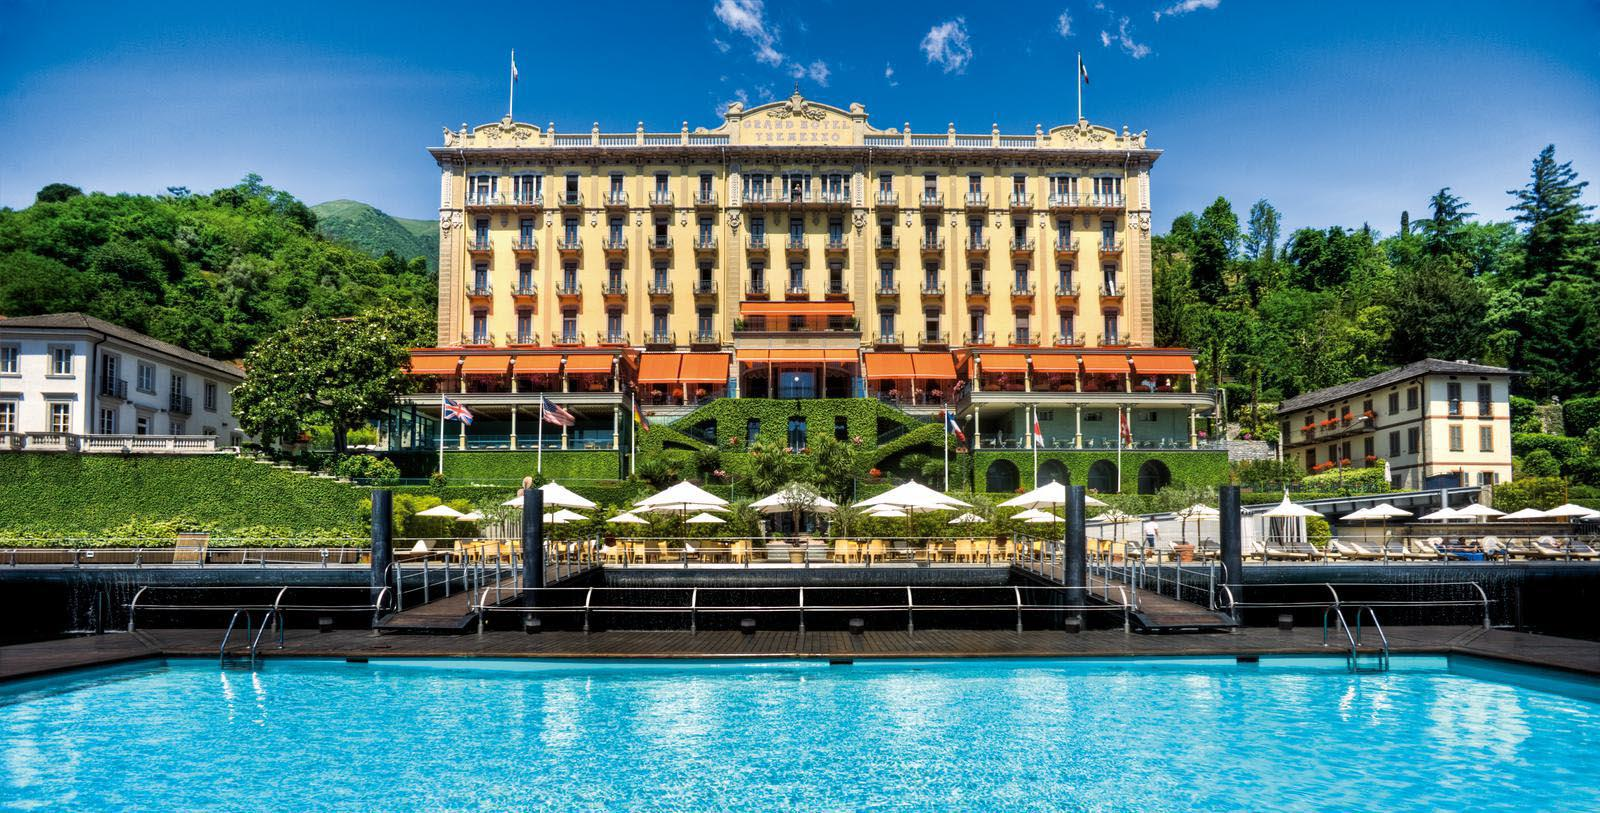 Image of Hotel Exterior & Outdoor Pool, Grand Hotel Tremezzo, Lake Como, Italy, 1910, Member of Historic Hotels Worldwide, Overview